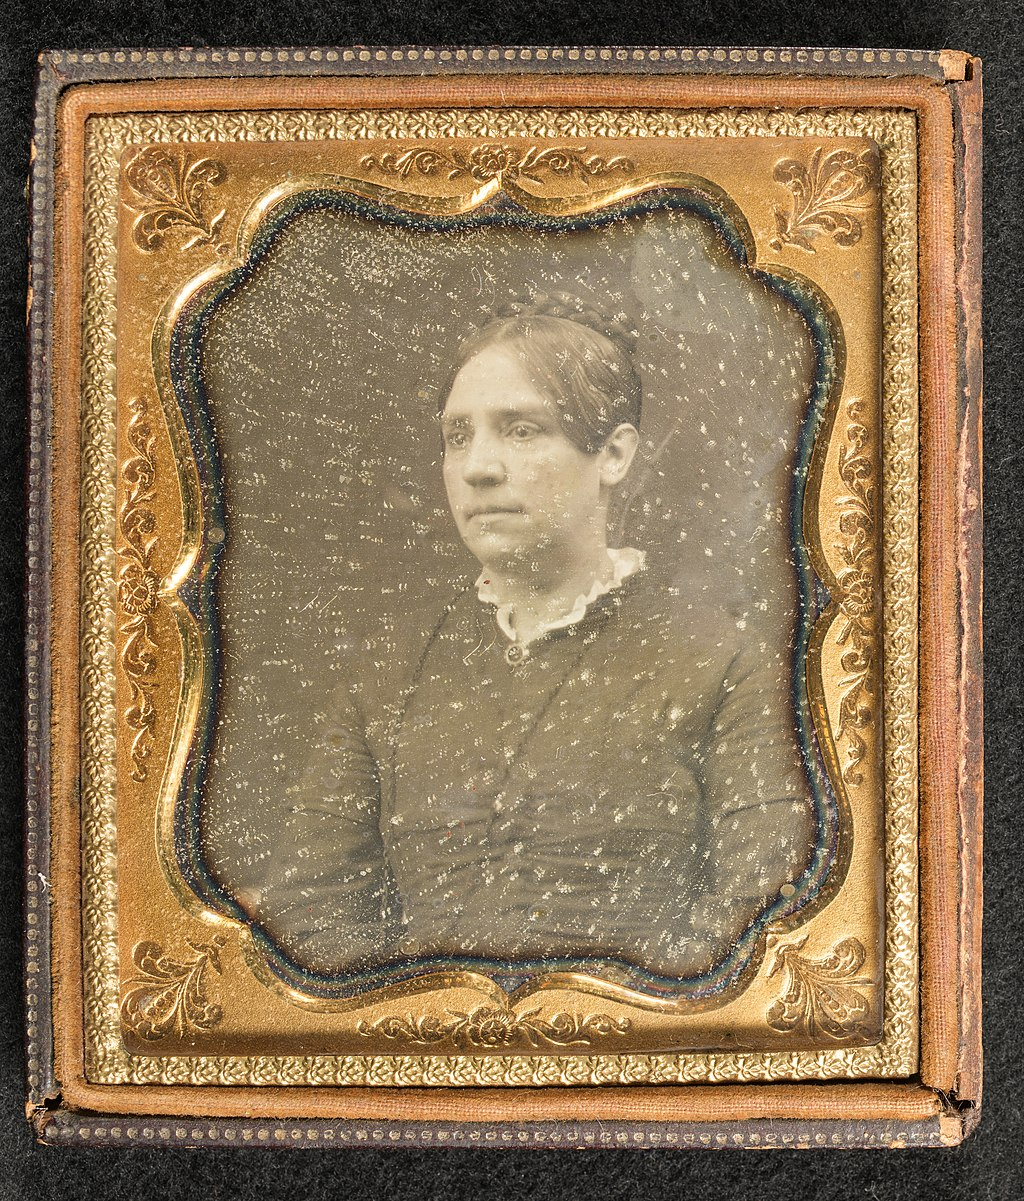 Black and white portrait of a woman in a gold frame.